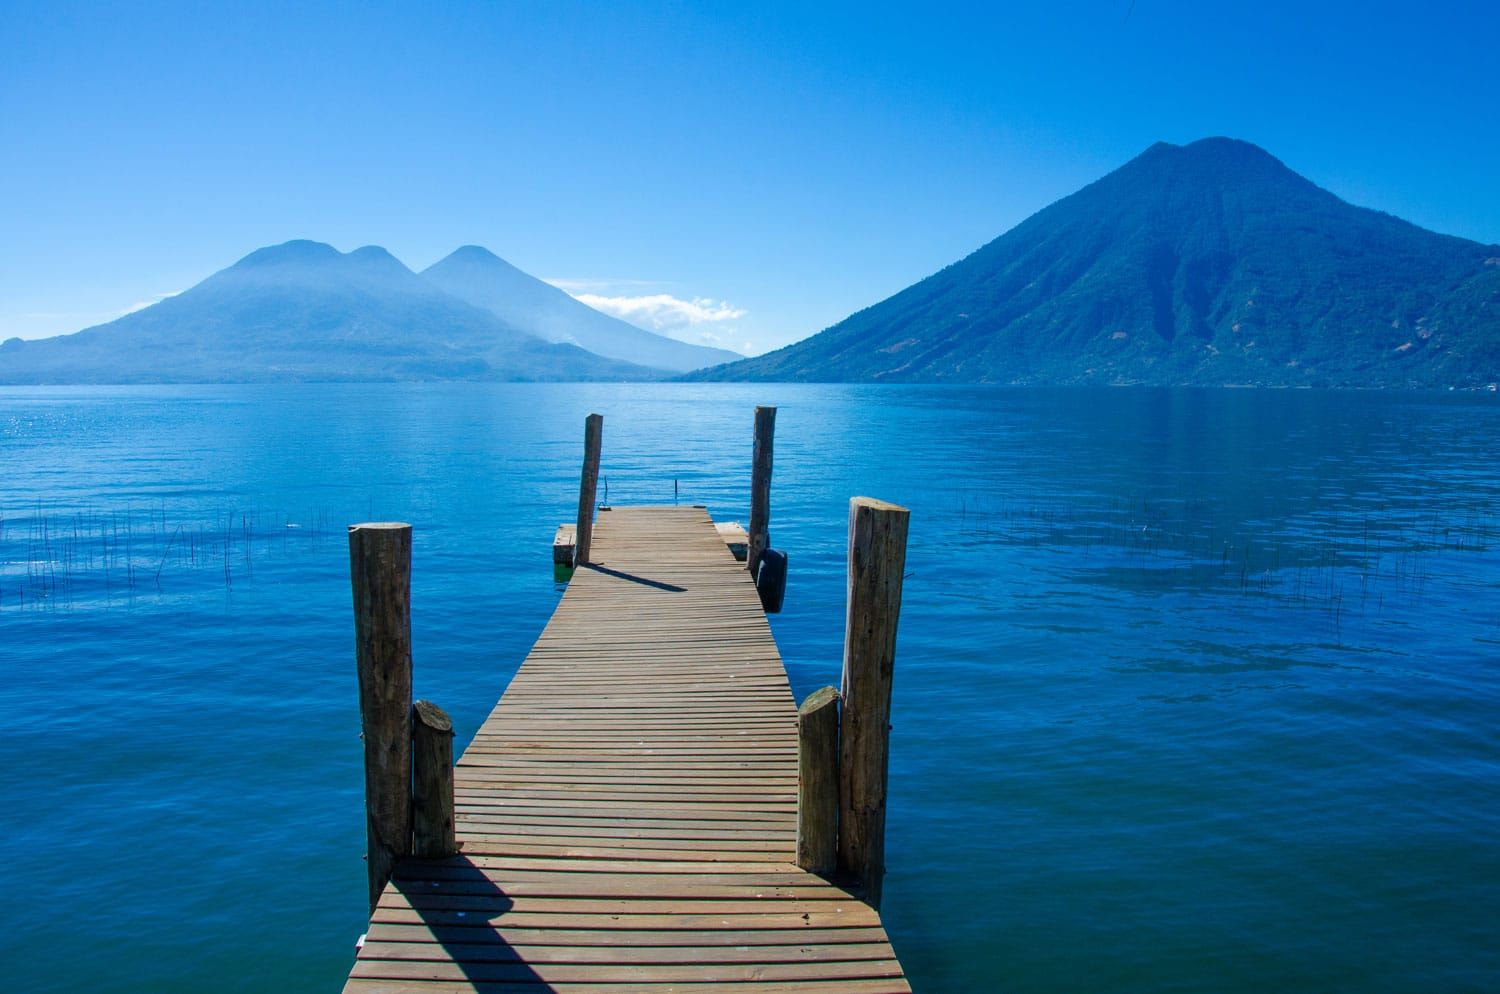 Pier at Lake Atitlan, Guatemala